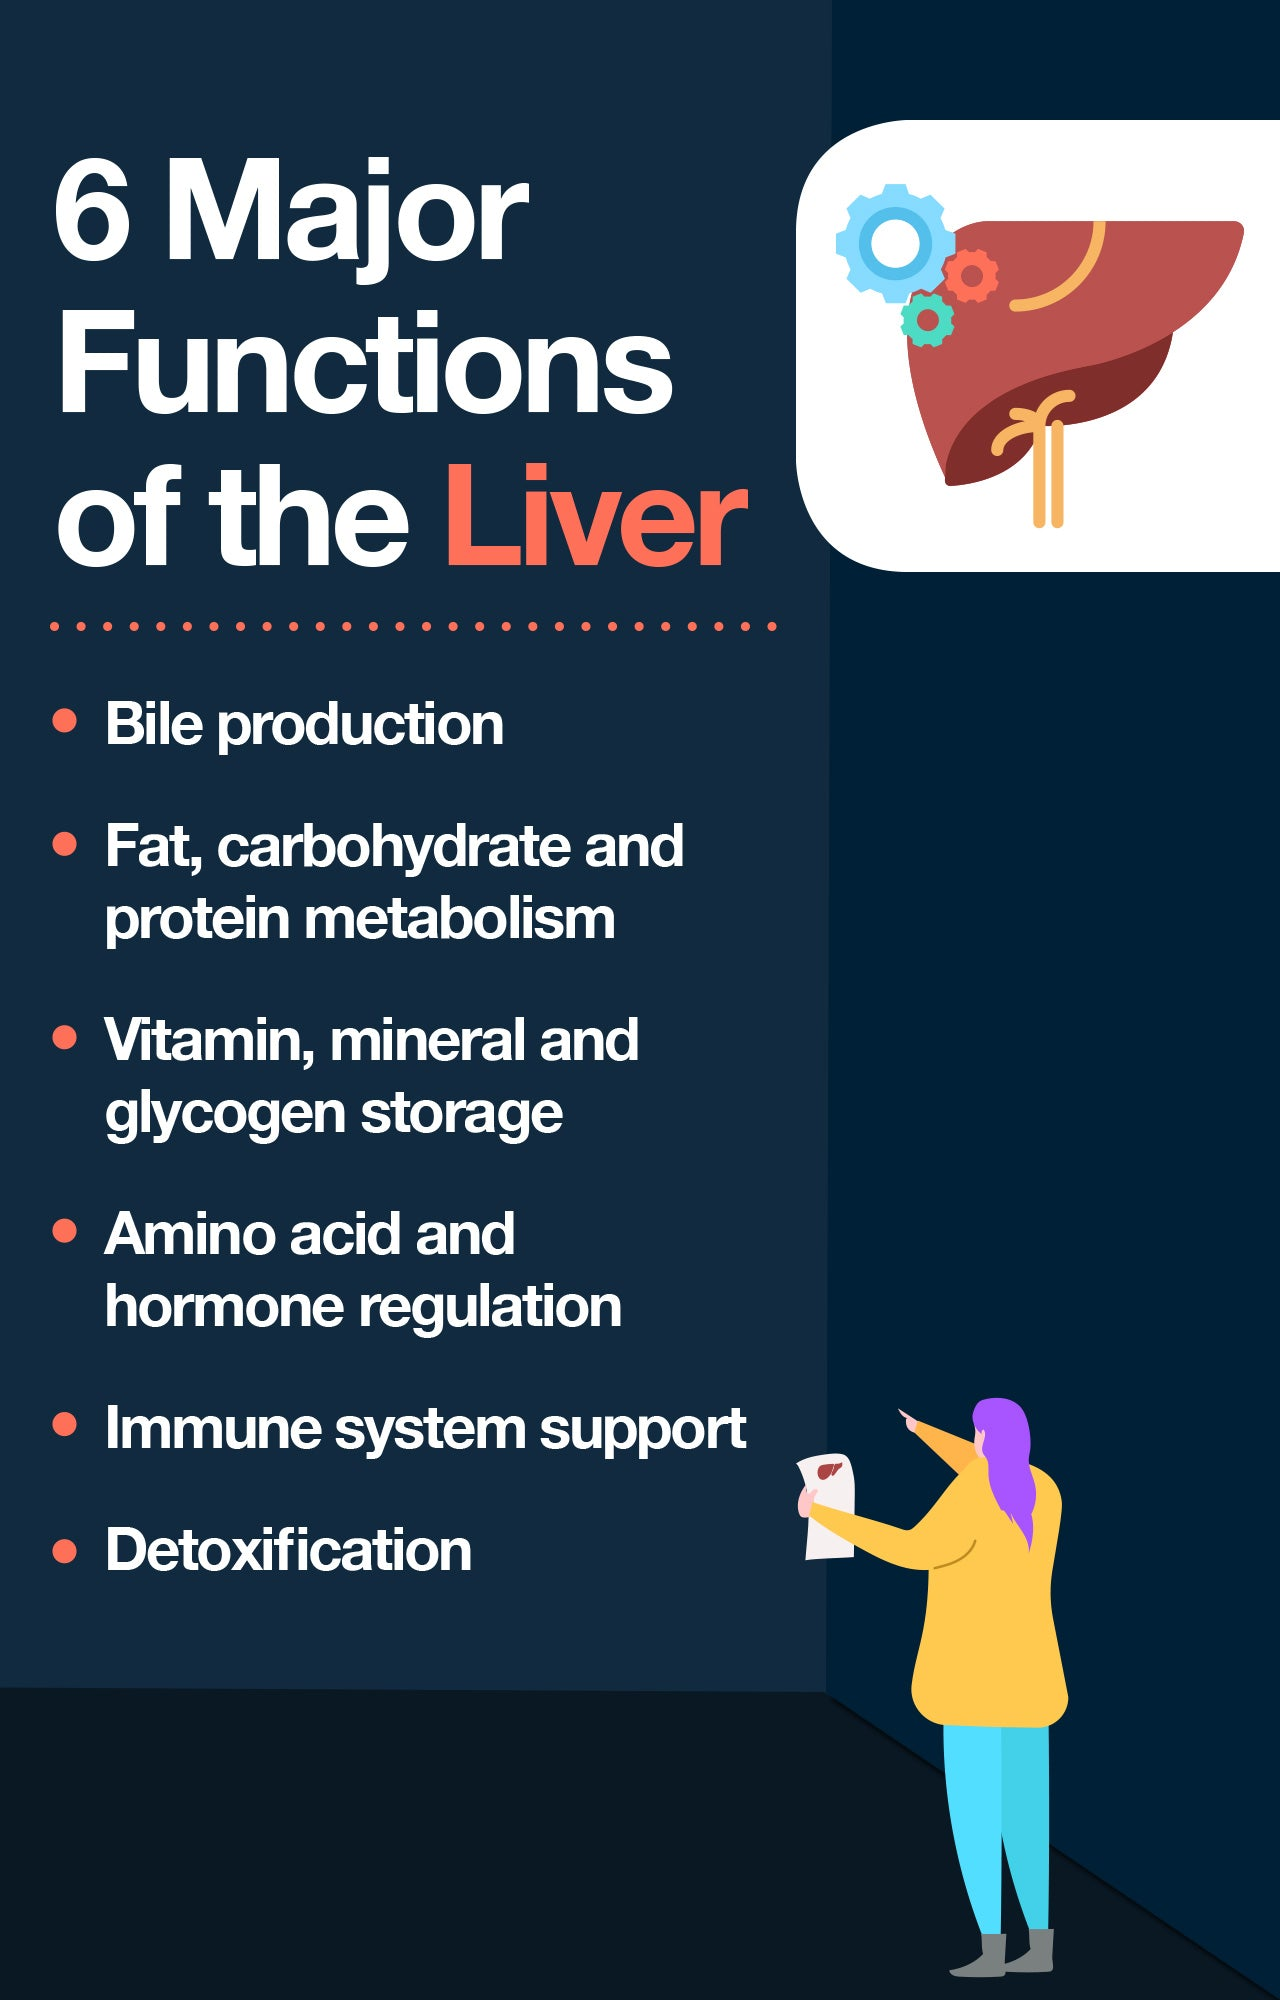 Primary functions of the liver